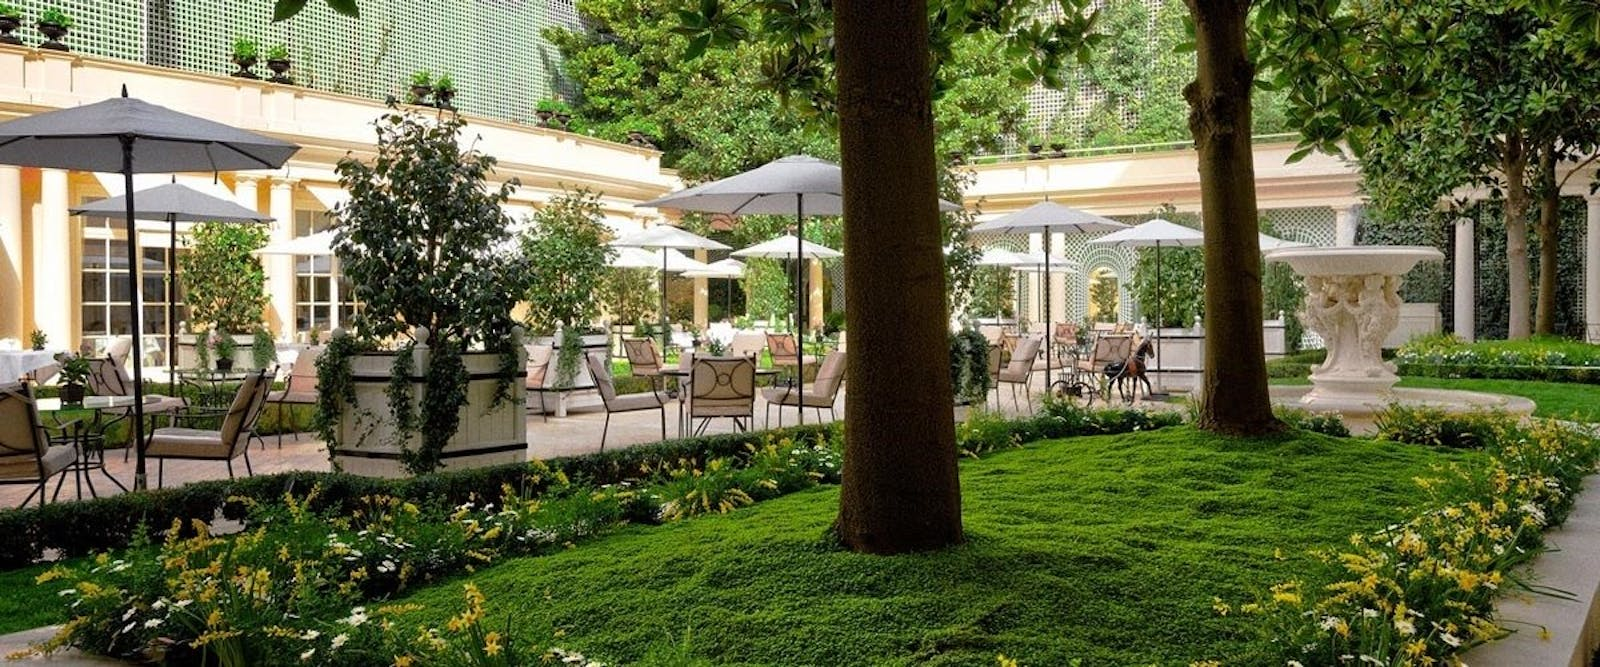 Hotel Gardens at Le Bristol, Paris, France